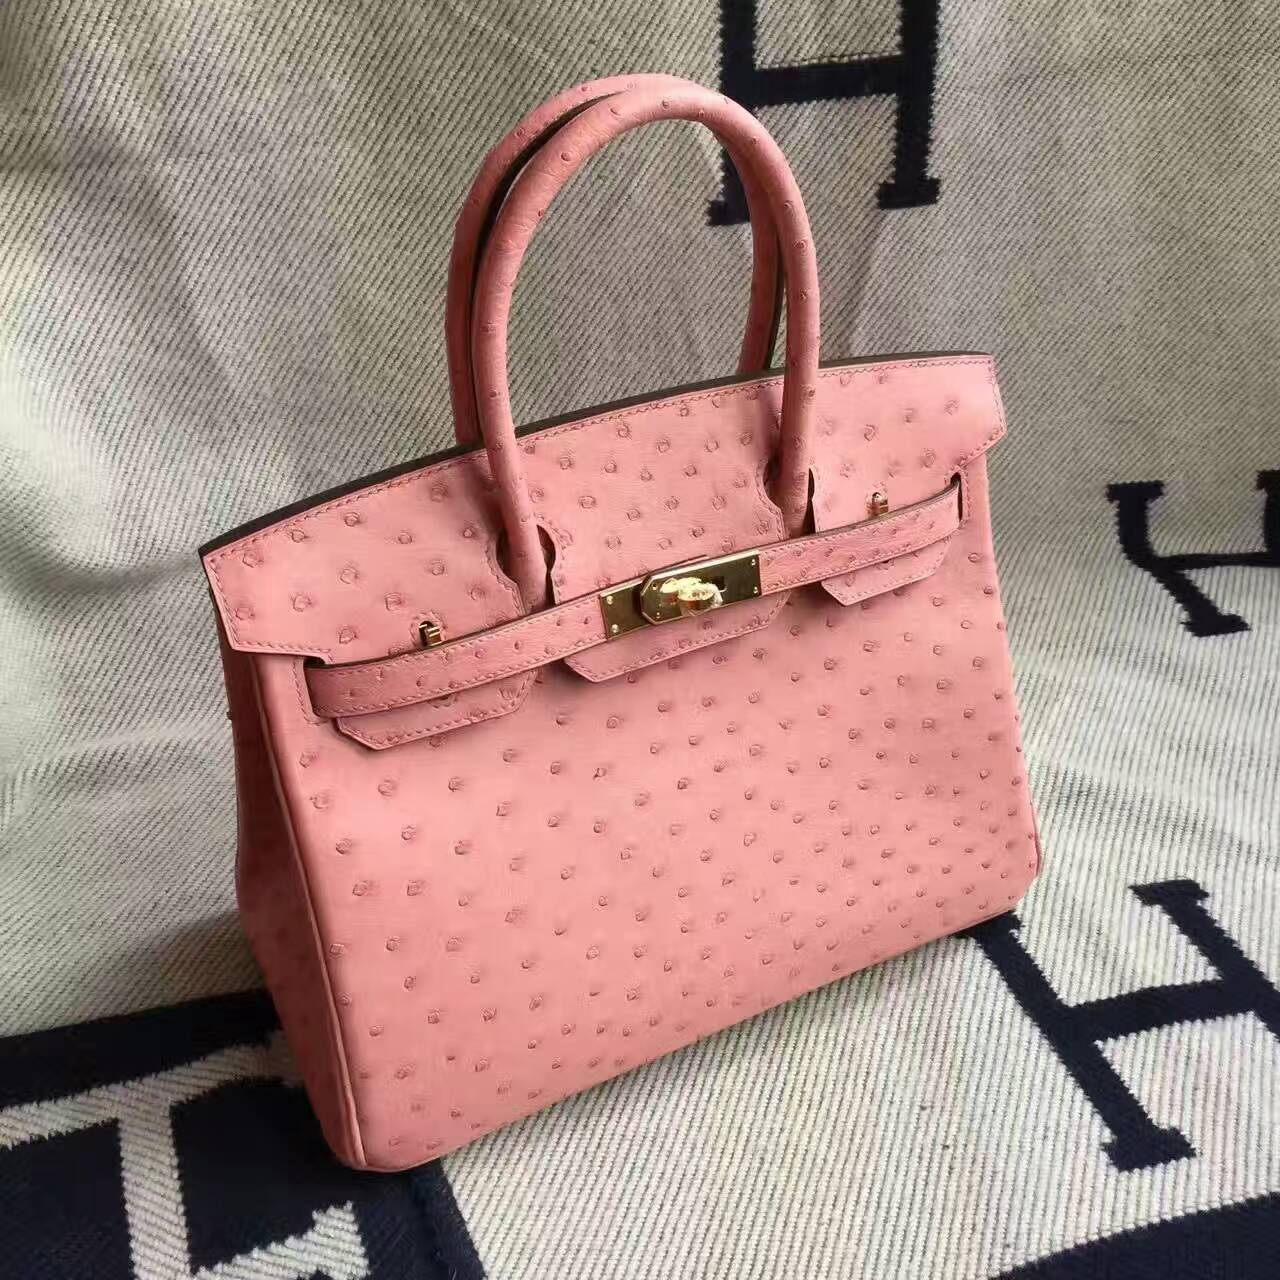 62fb359571eb Hot Sale Hermes KK Ostrich Leather Birkin Bag 30cm in CC94 Terre Cuite